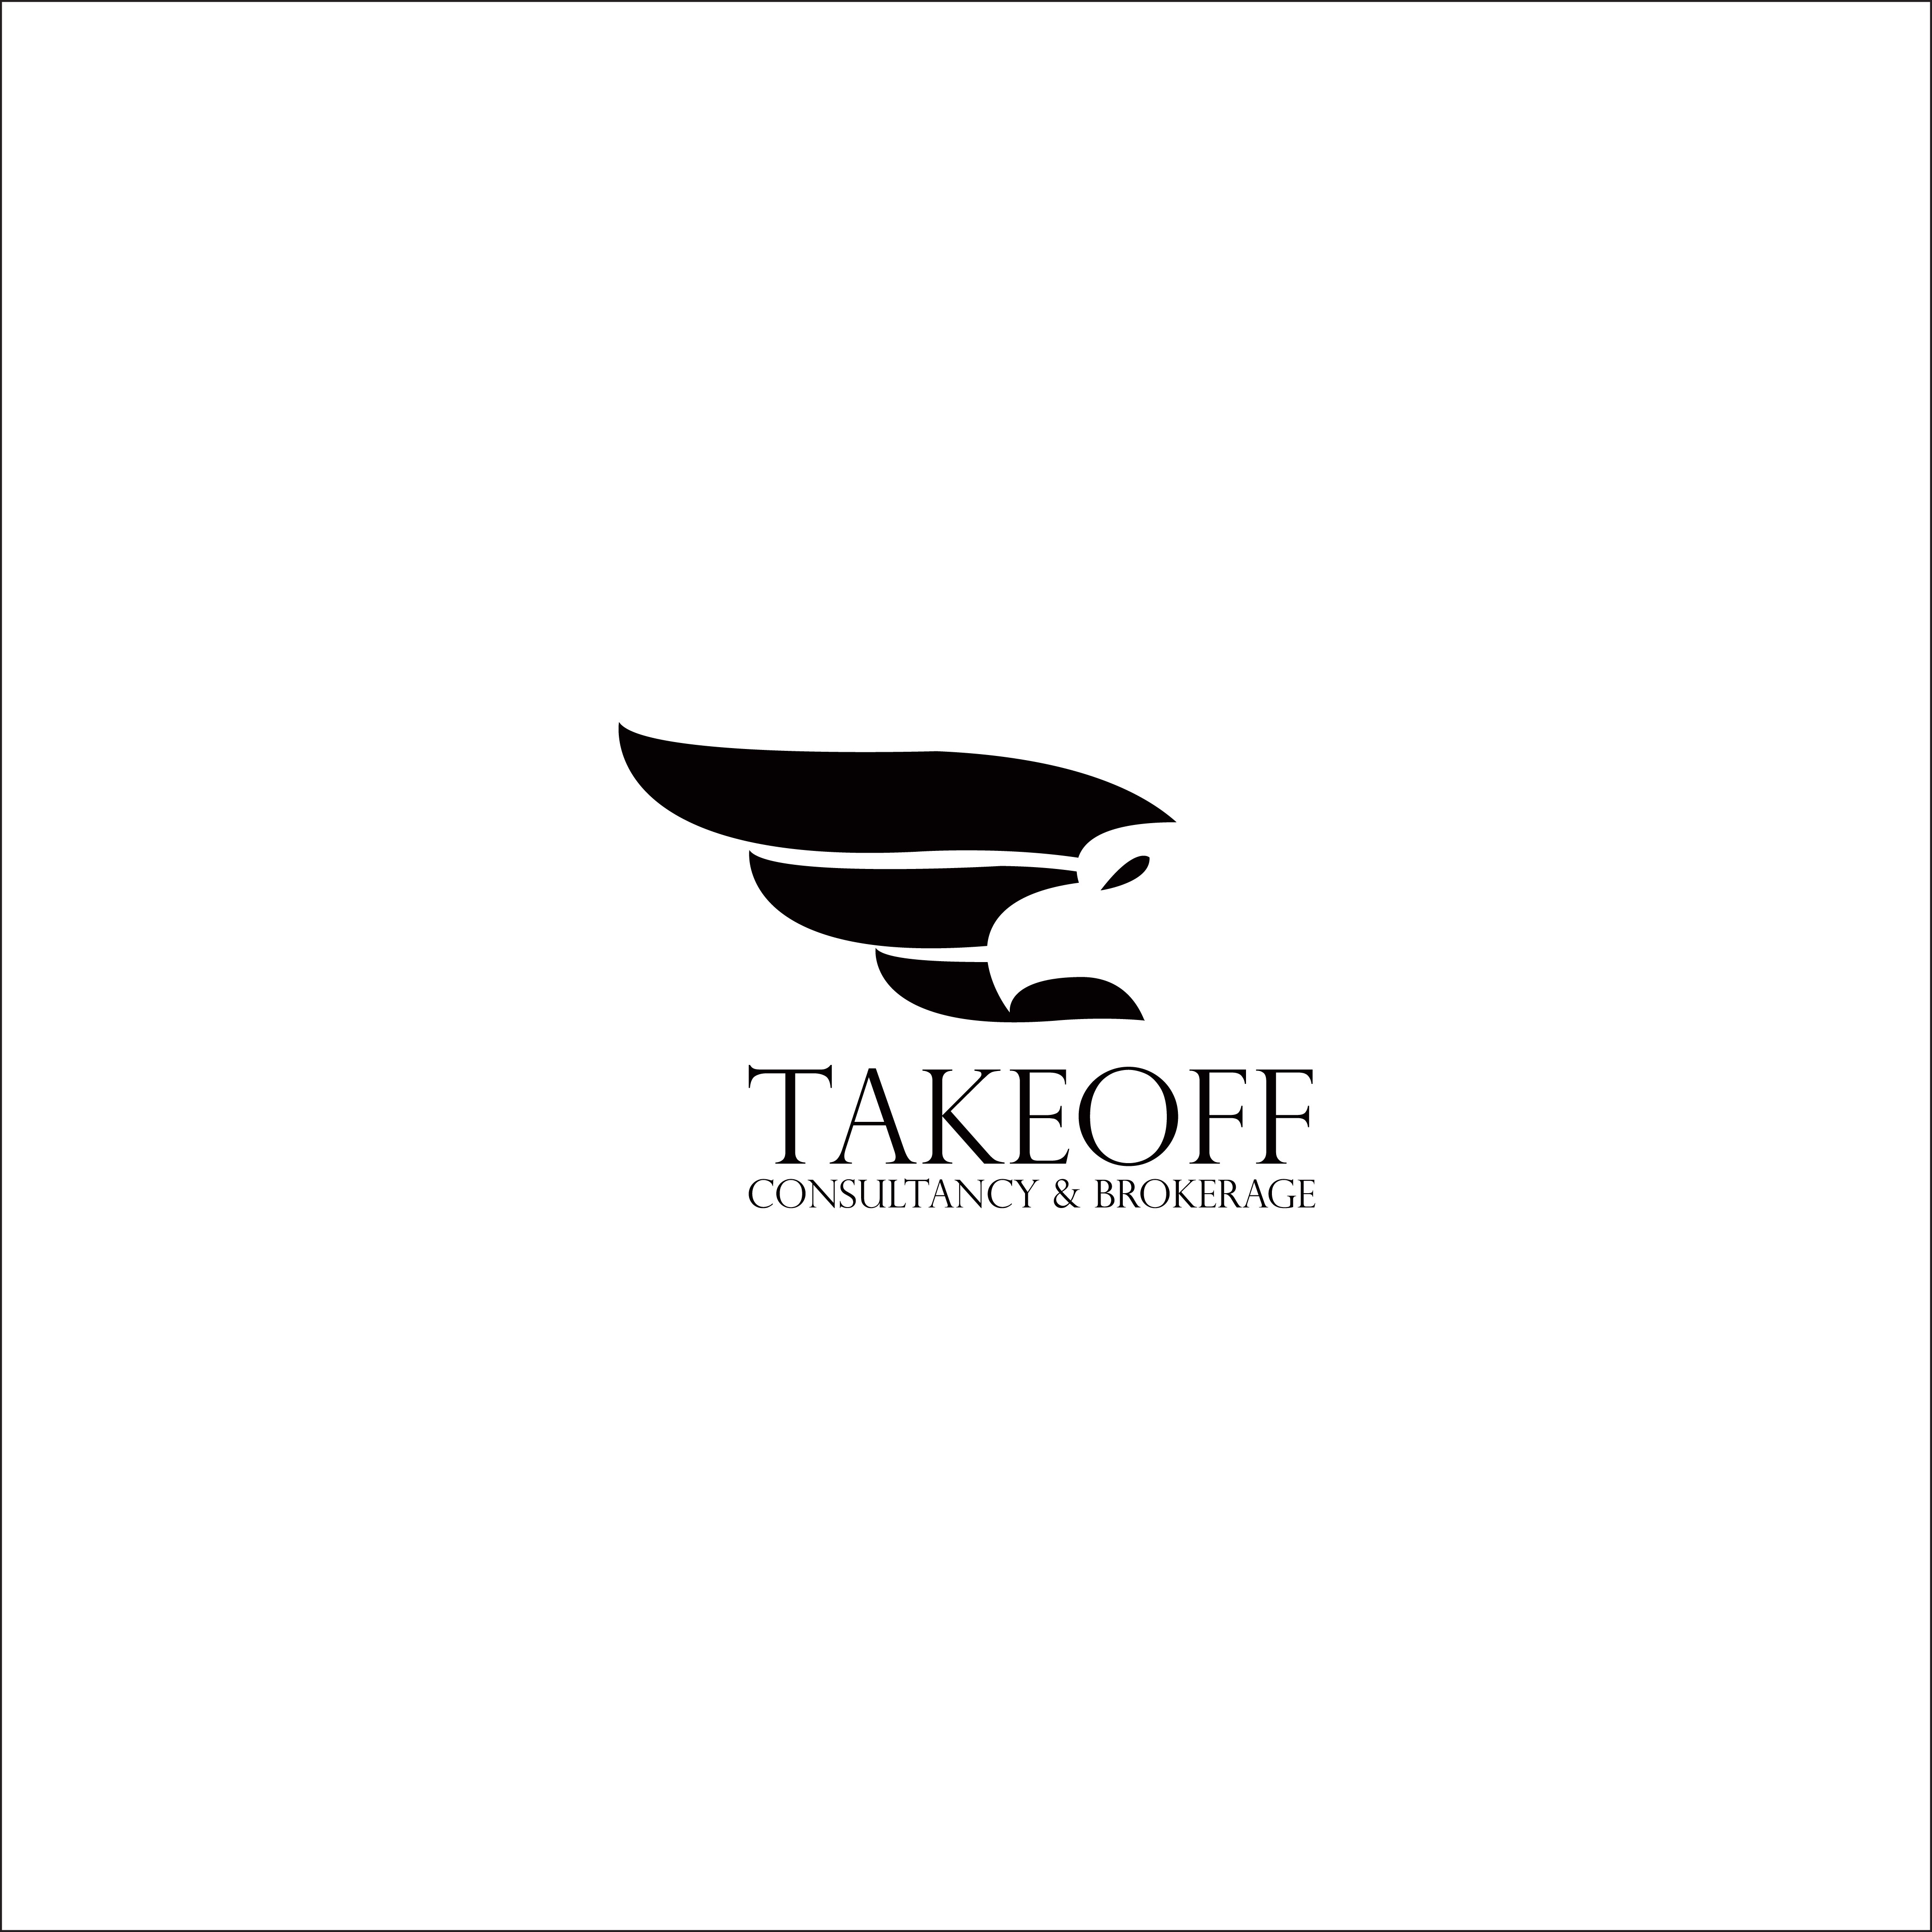 Create a sleek and modern design for takeoff consultancy!